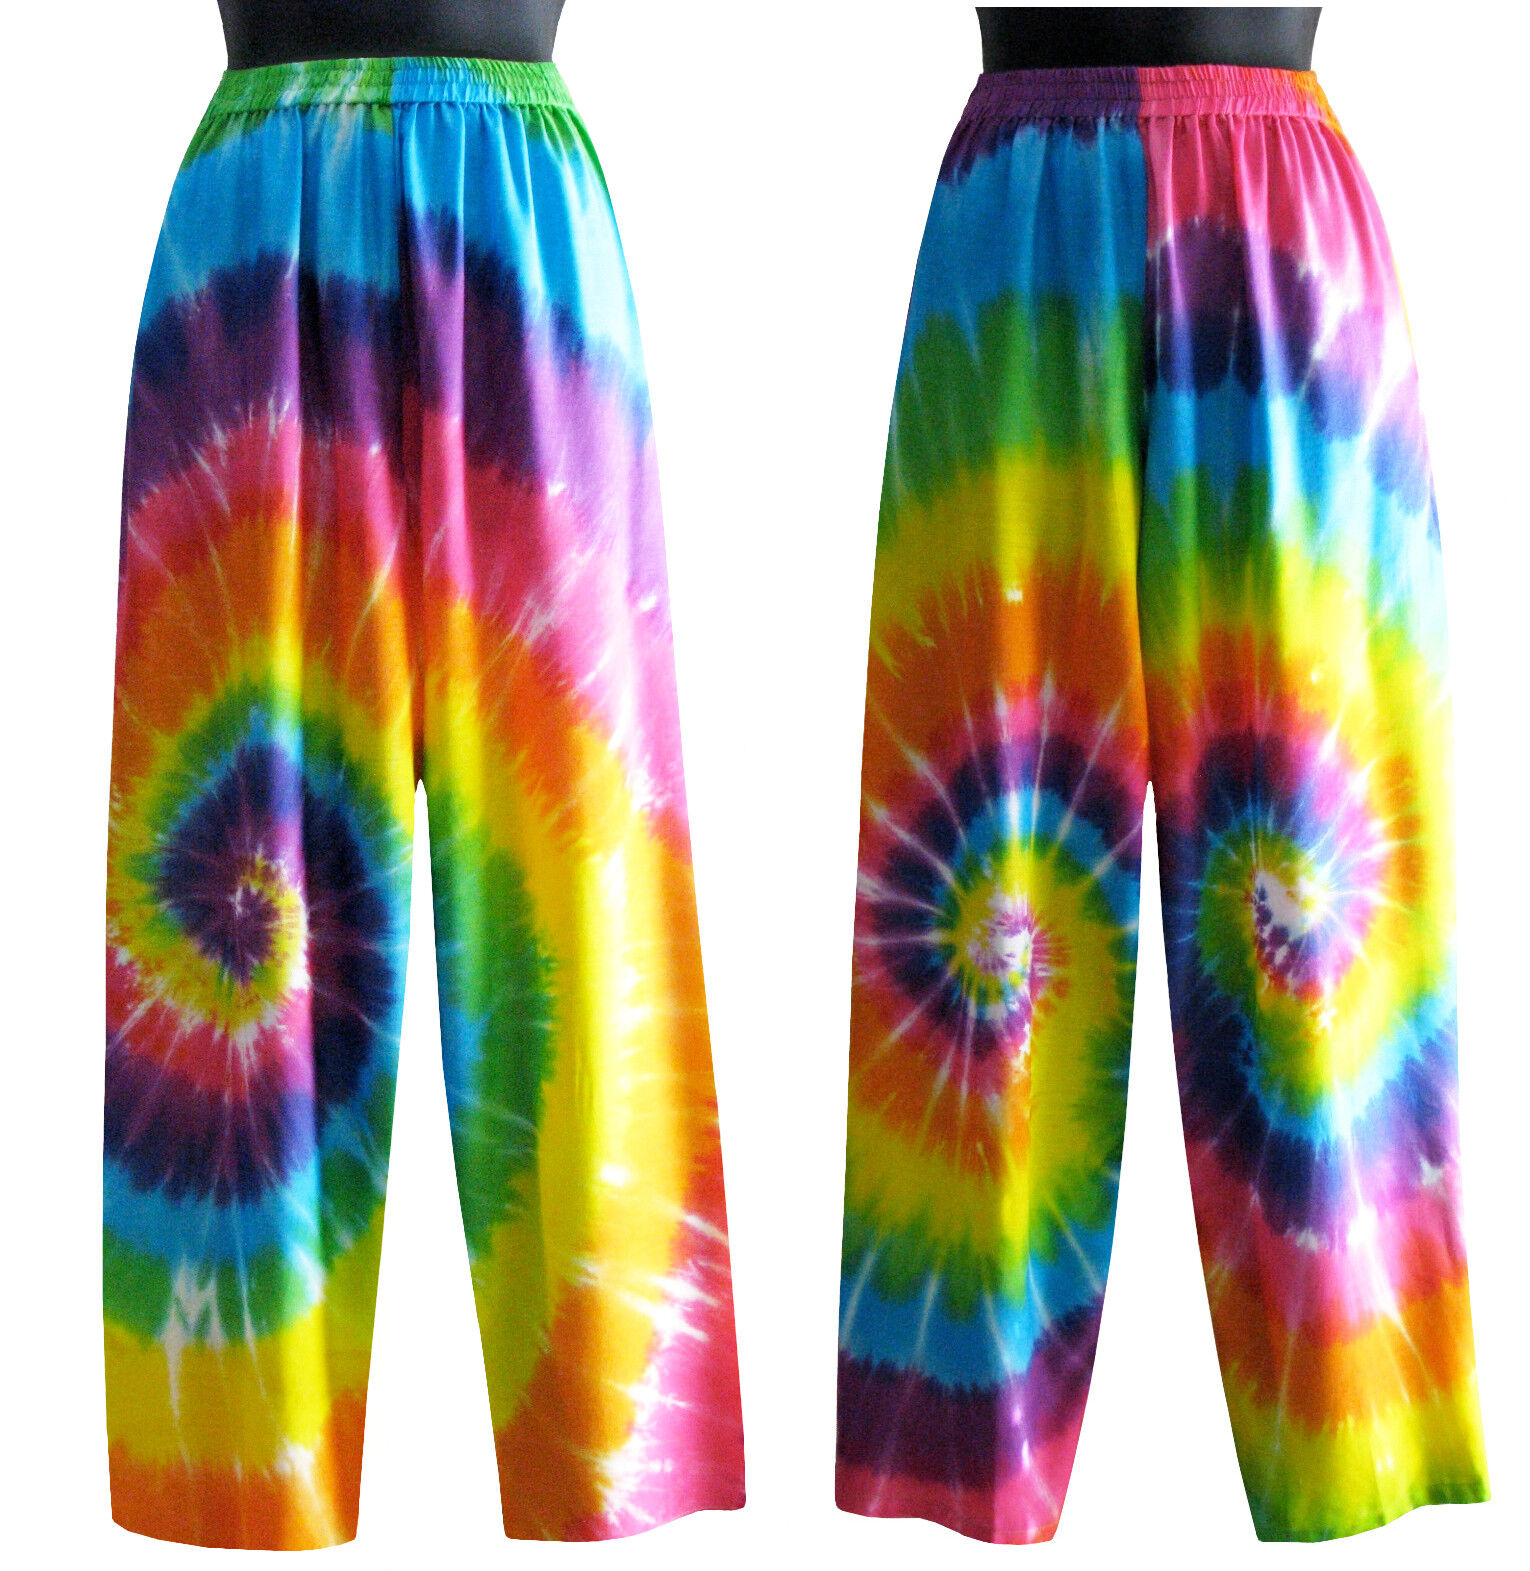 Rainbow Tie Dye Lounge Pants Pockets Multi Color Summer Beac